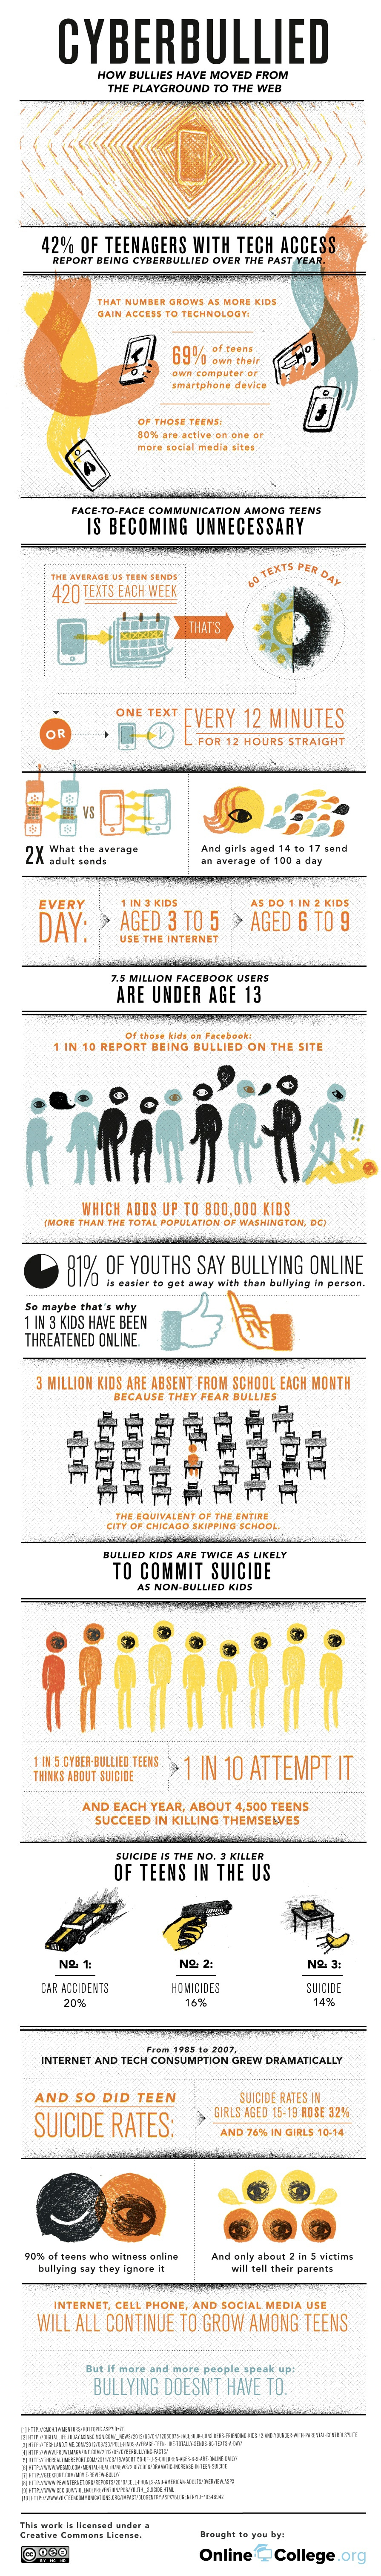 Bullying-On-The-Internet-Infographic